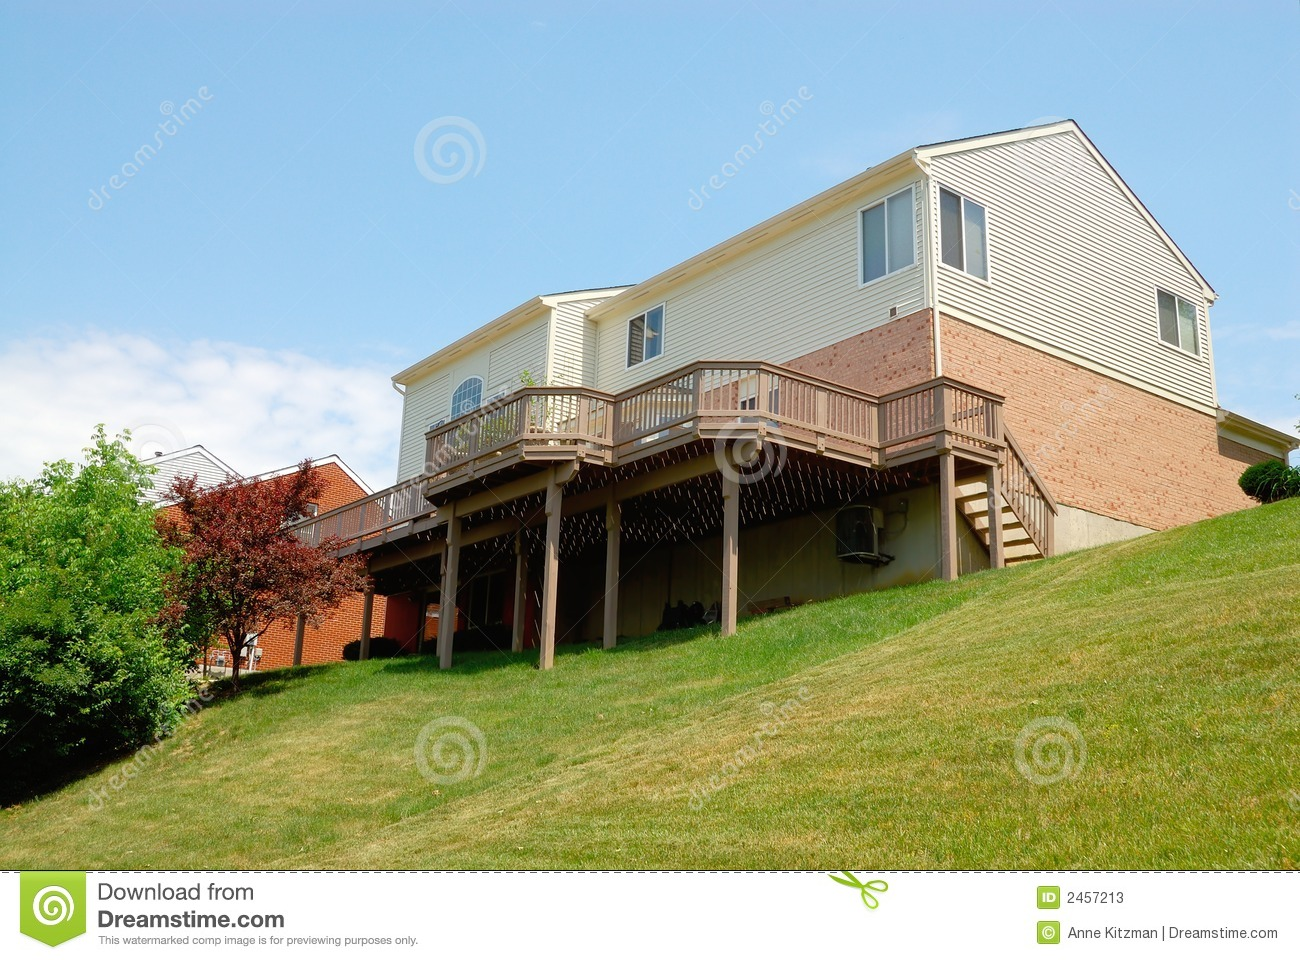 residential 2 story brick house sitting on a sloped back yard